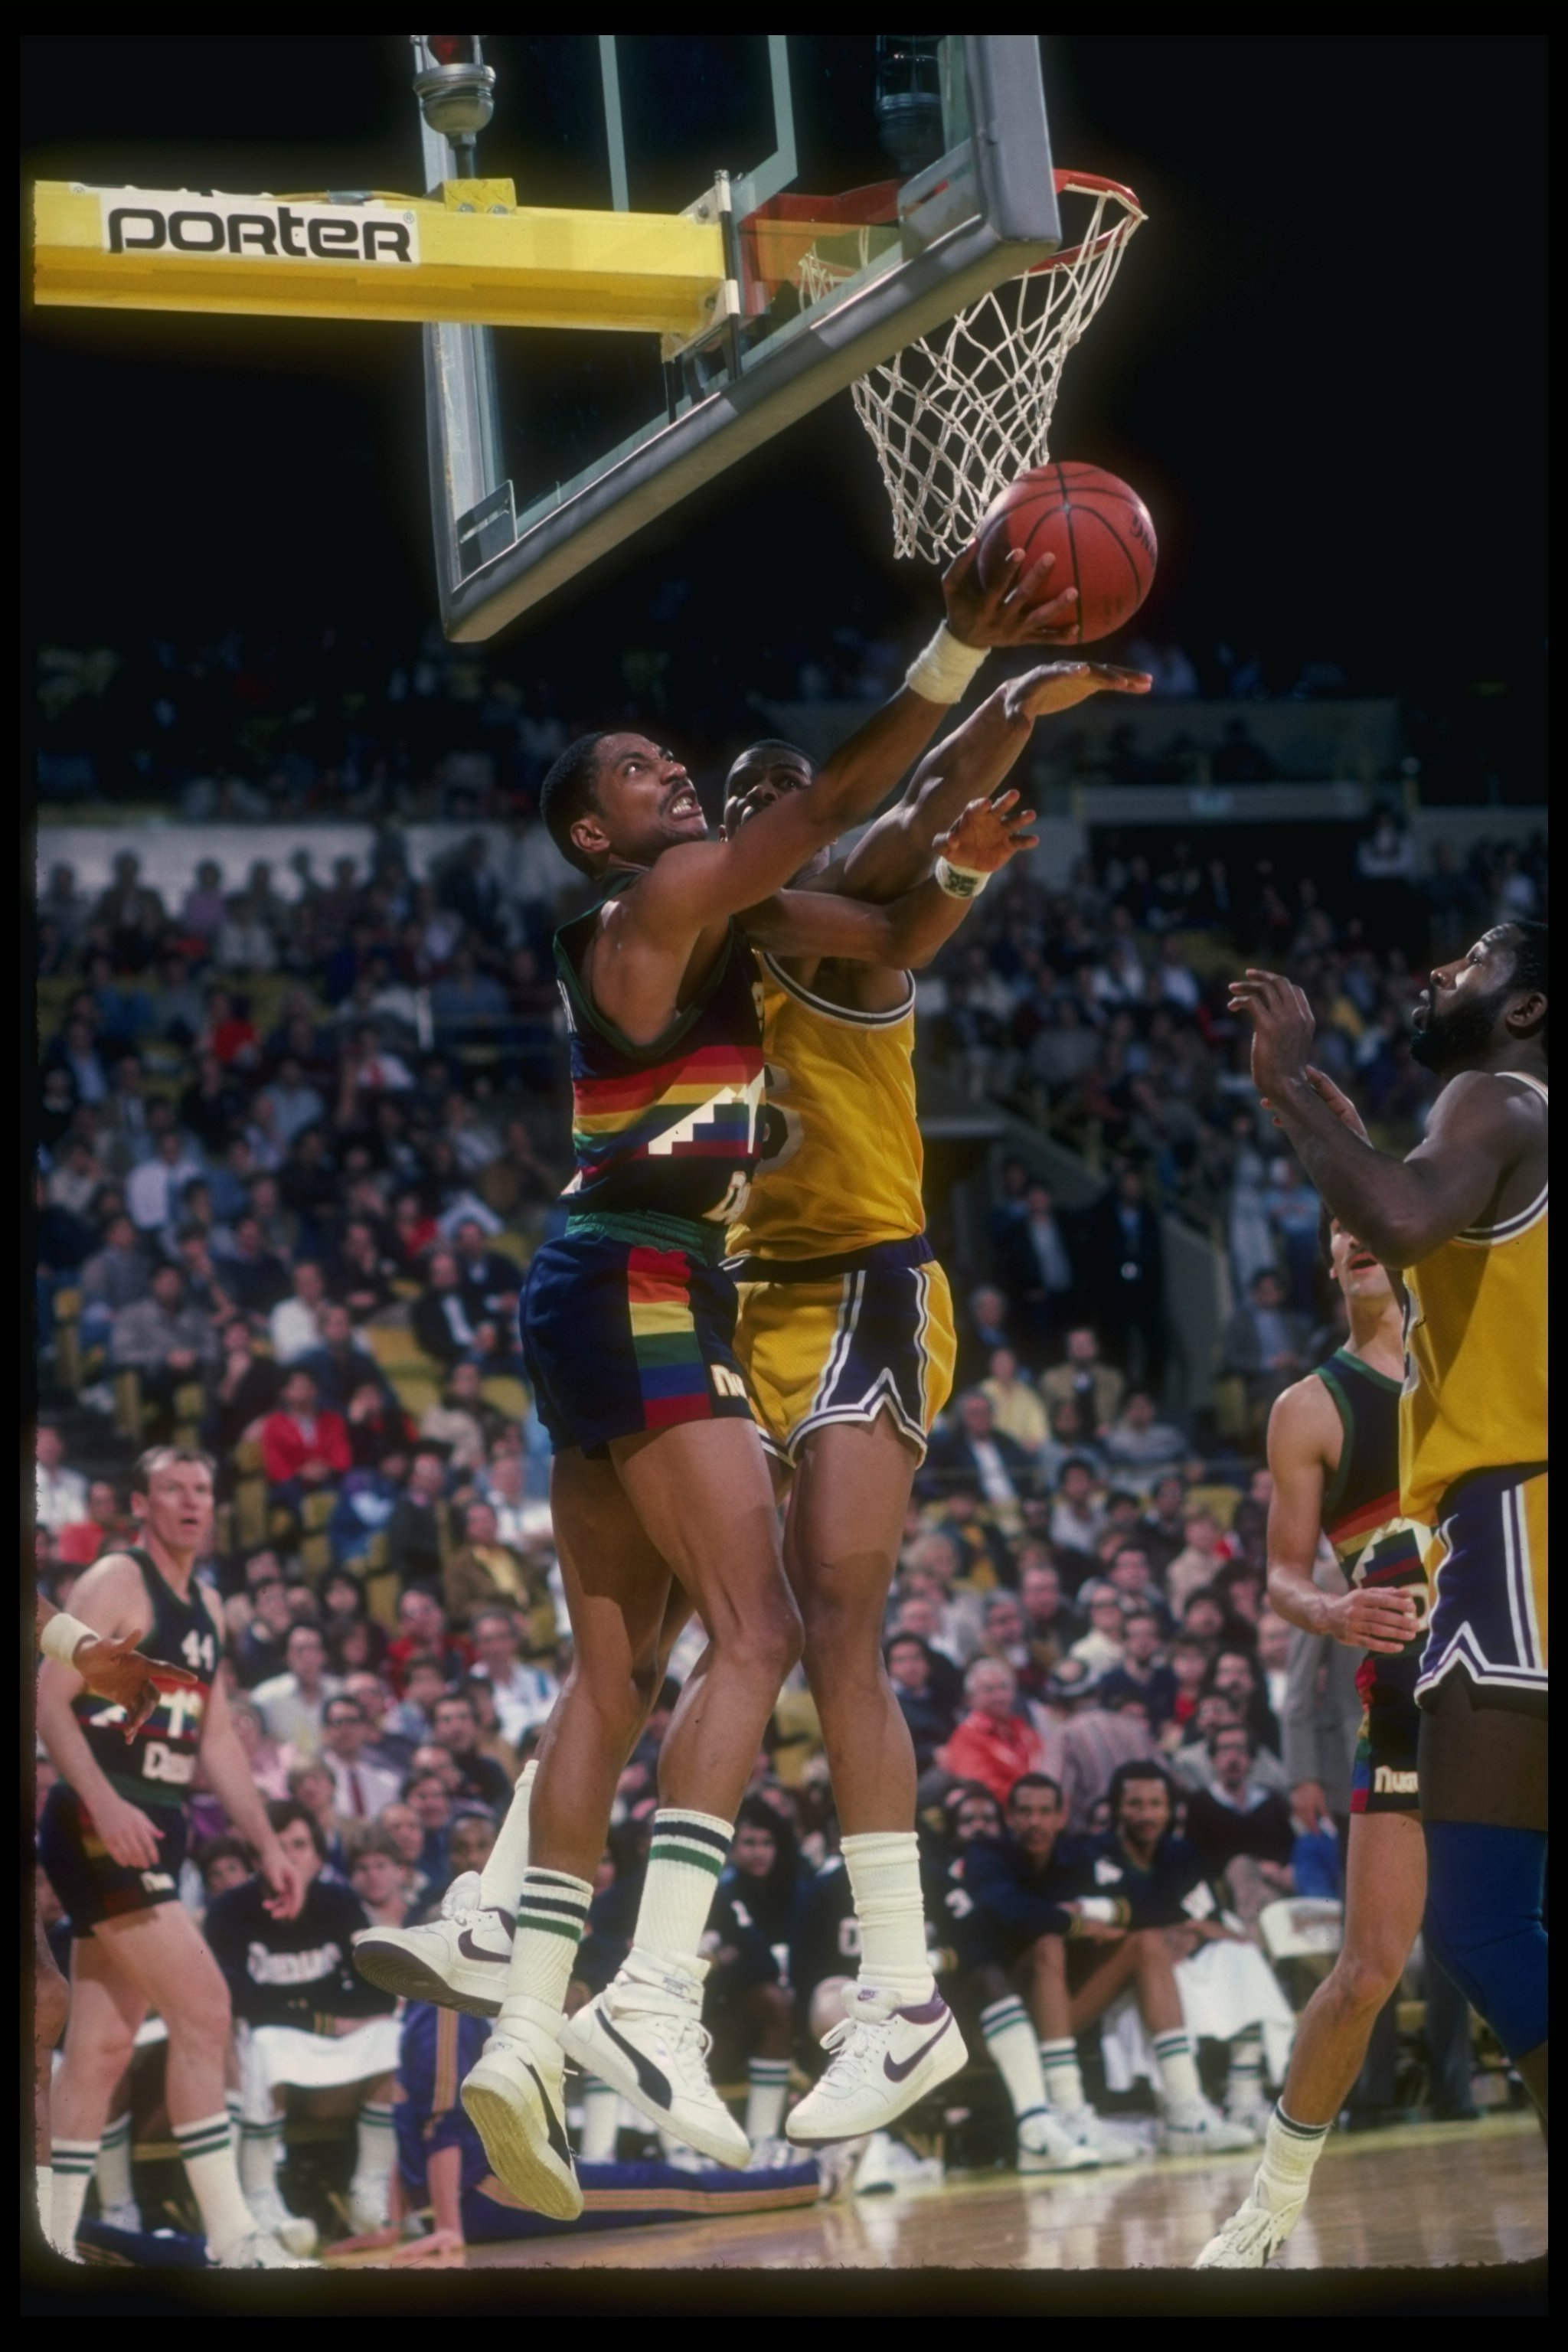 Alex English: The Prototype Player doe the Run and Gun System